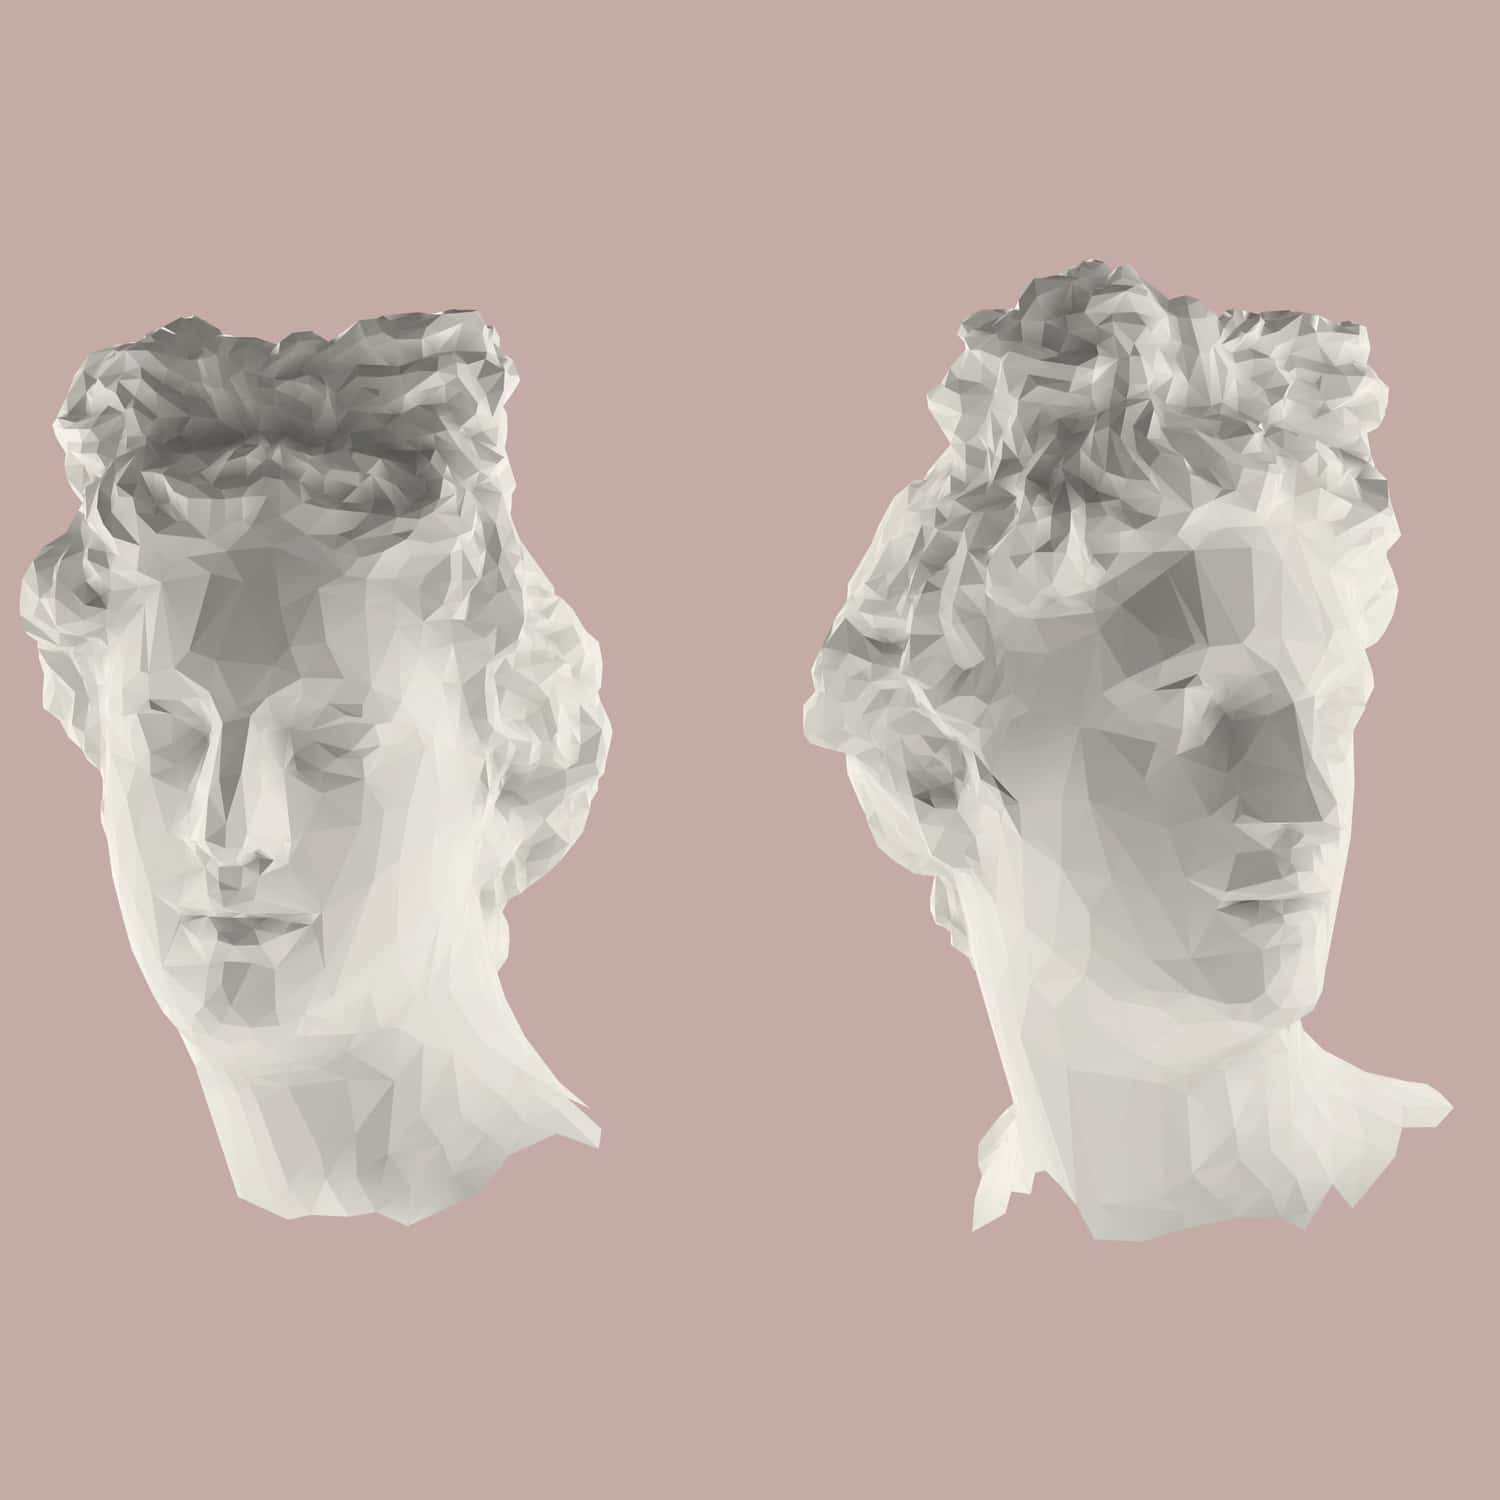 The art of plastic surgery continues to change, but it origins are actually ancient.